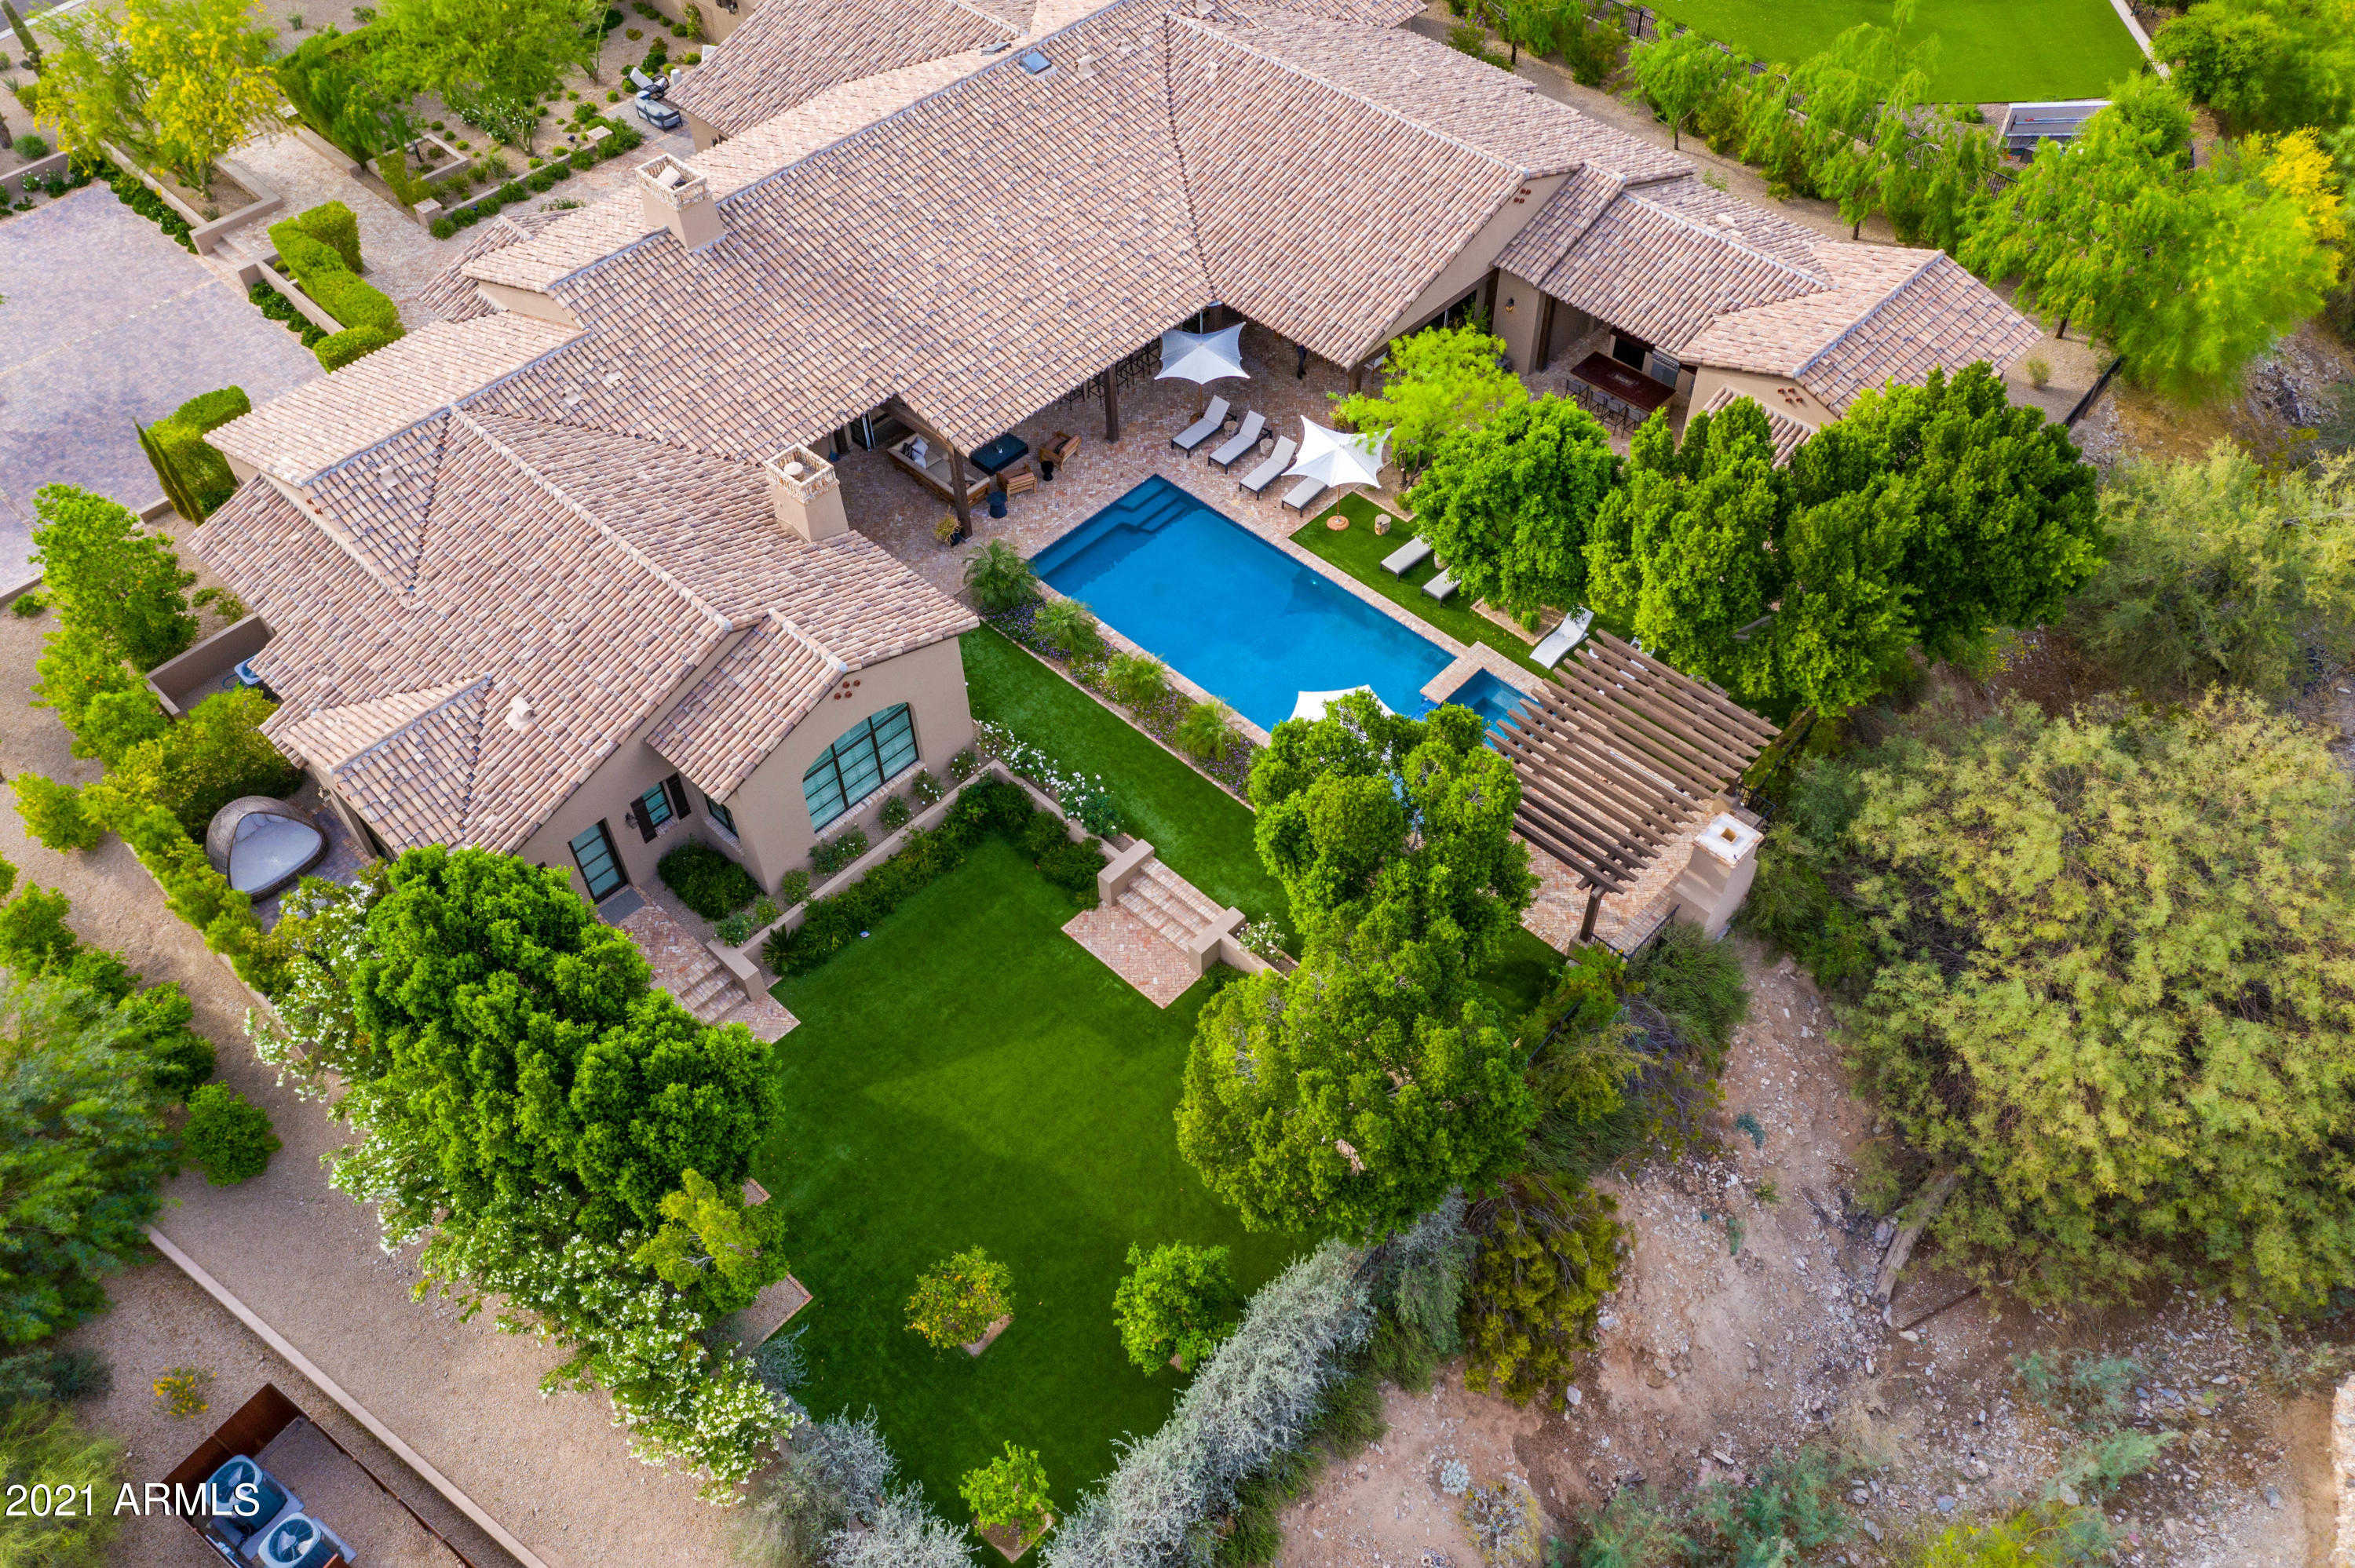 $5,250,000 - 5Br/7Ba - Home for Sale in Lot 5 Palo Verde Foothills Mcr 006503, Paradise Valley